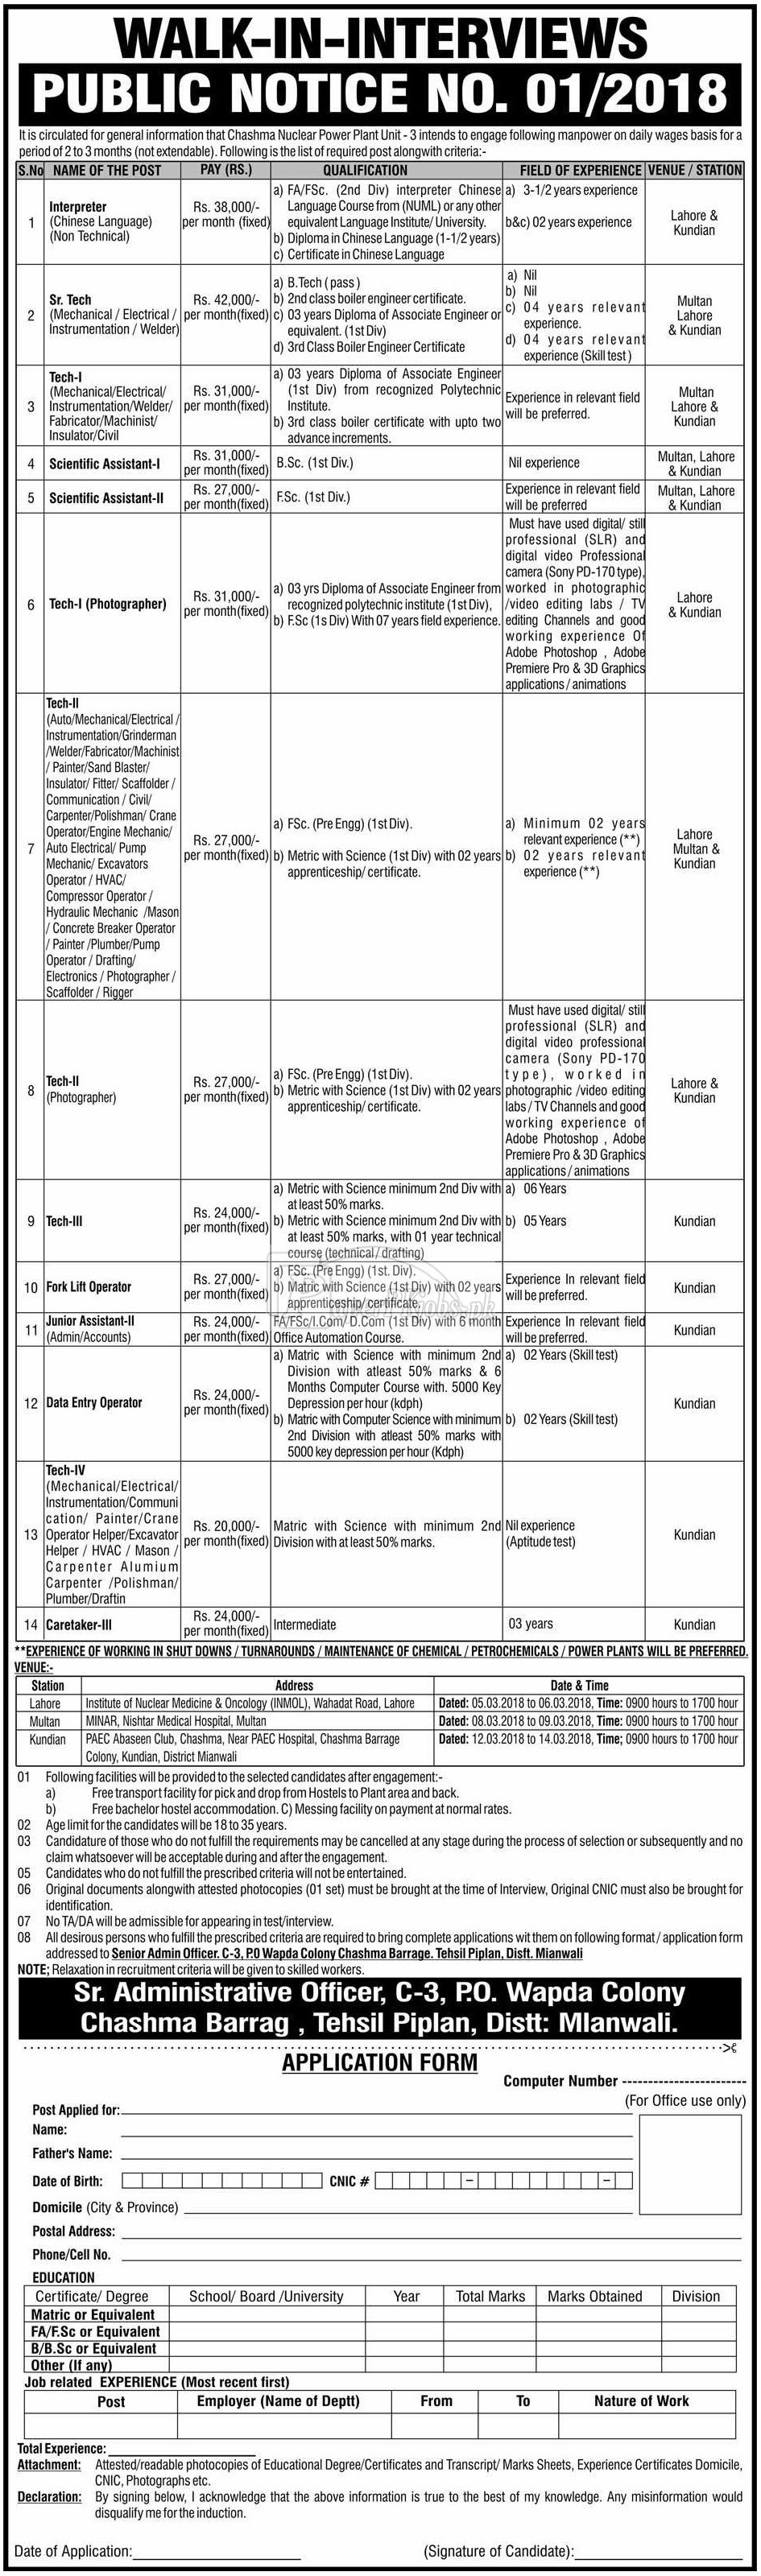 Pakistan Atomic Energy Commission PAEC Jobs 2018